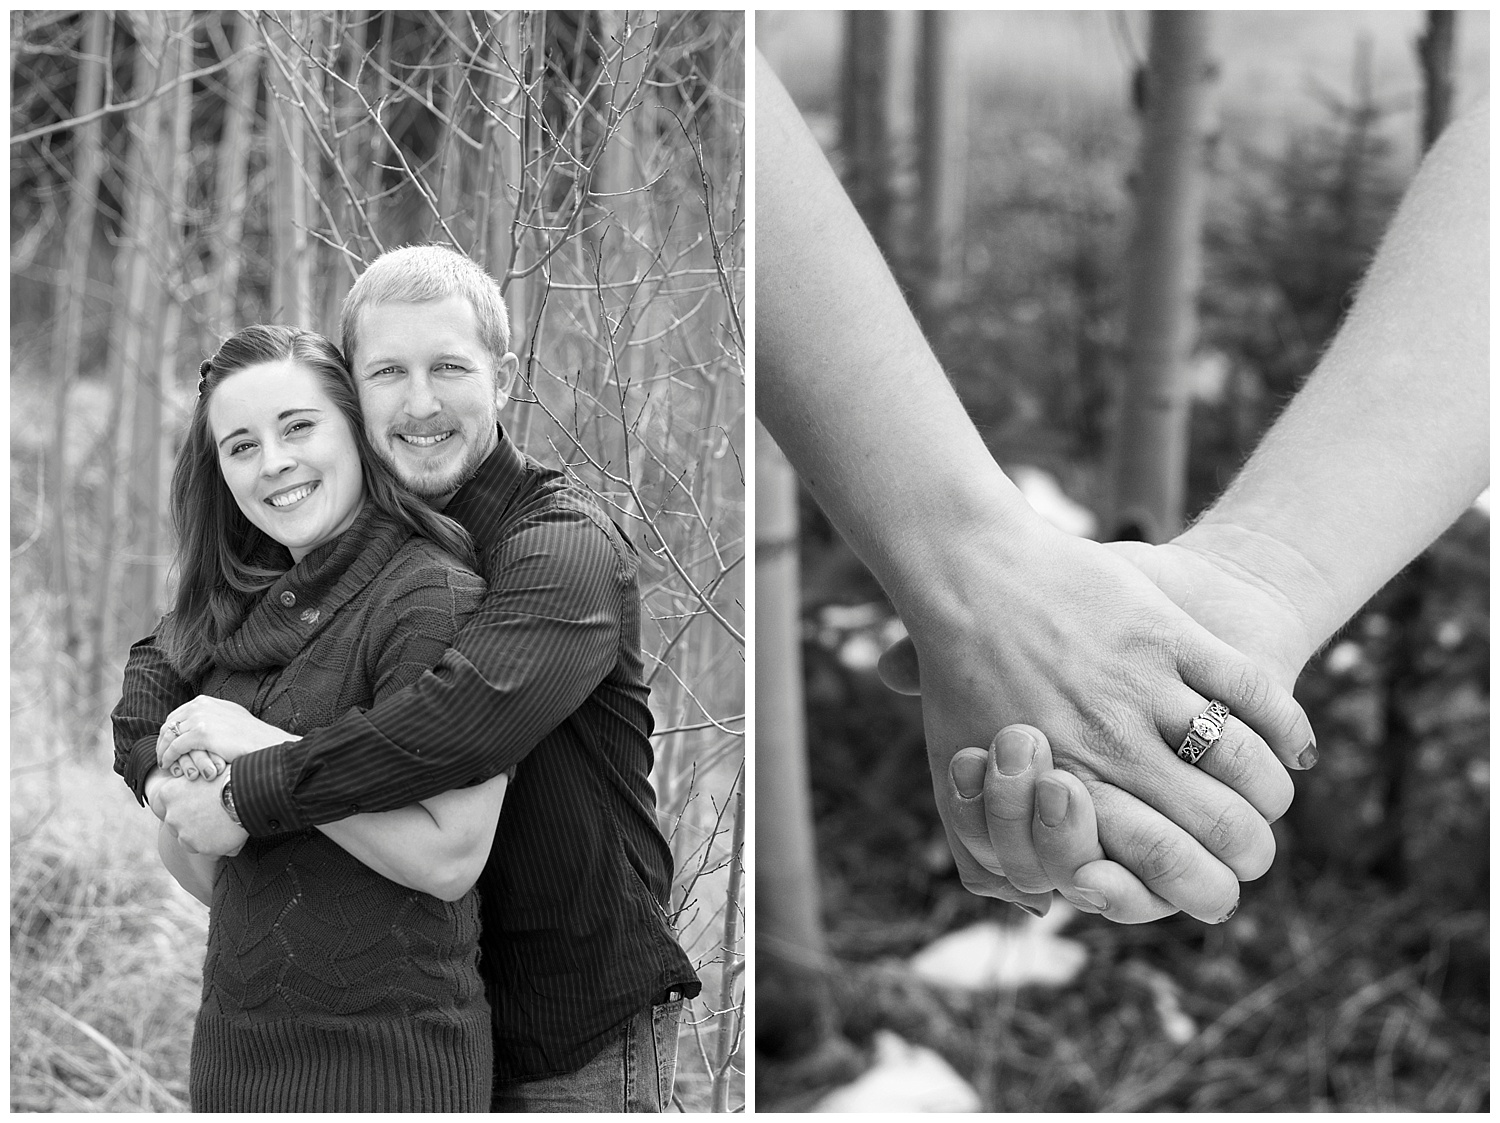 Couple in Black & White Smiling | Mountain Engagement Photography | Golden Colorado Wedding Photographer | Farm Wedding Photographer | Apollo Fields Wedding Photojournalism